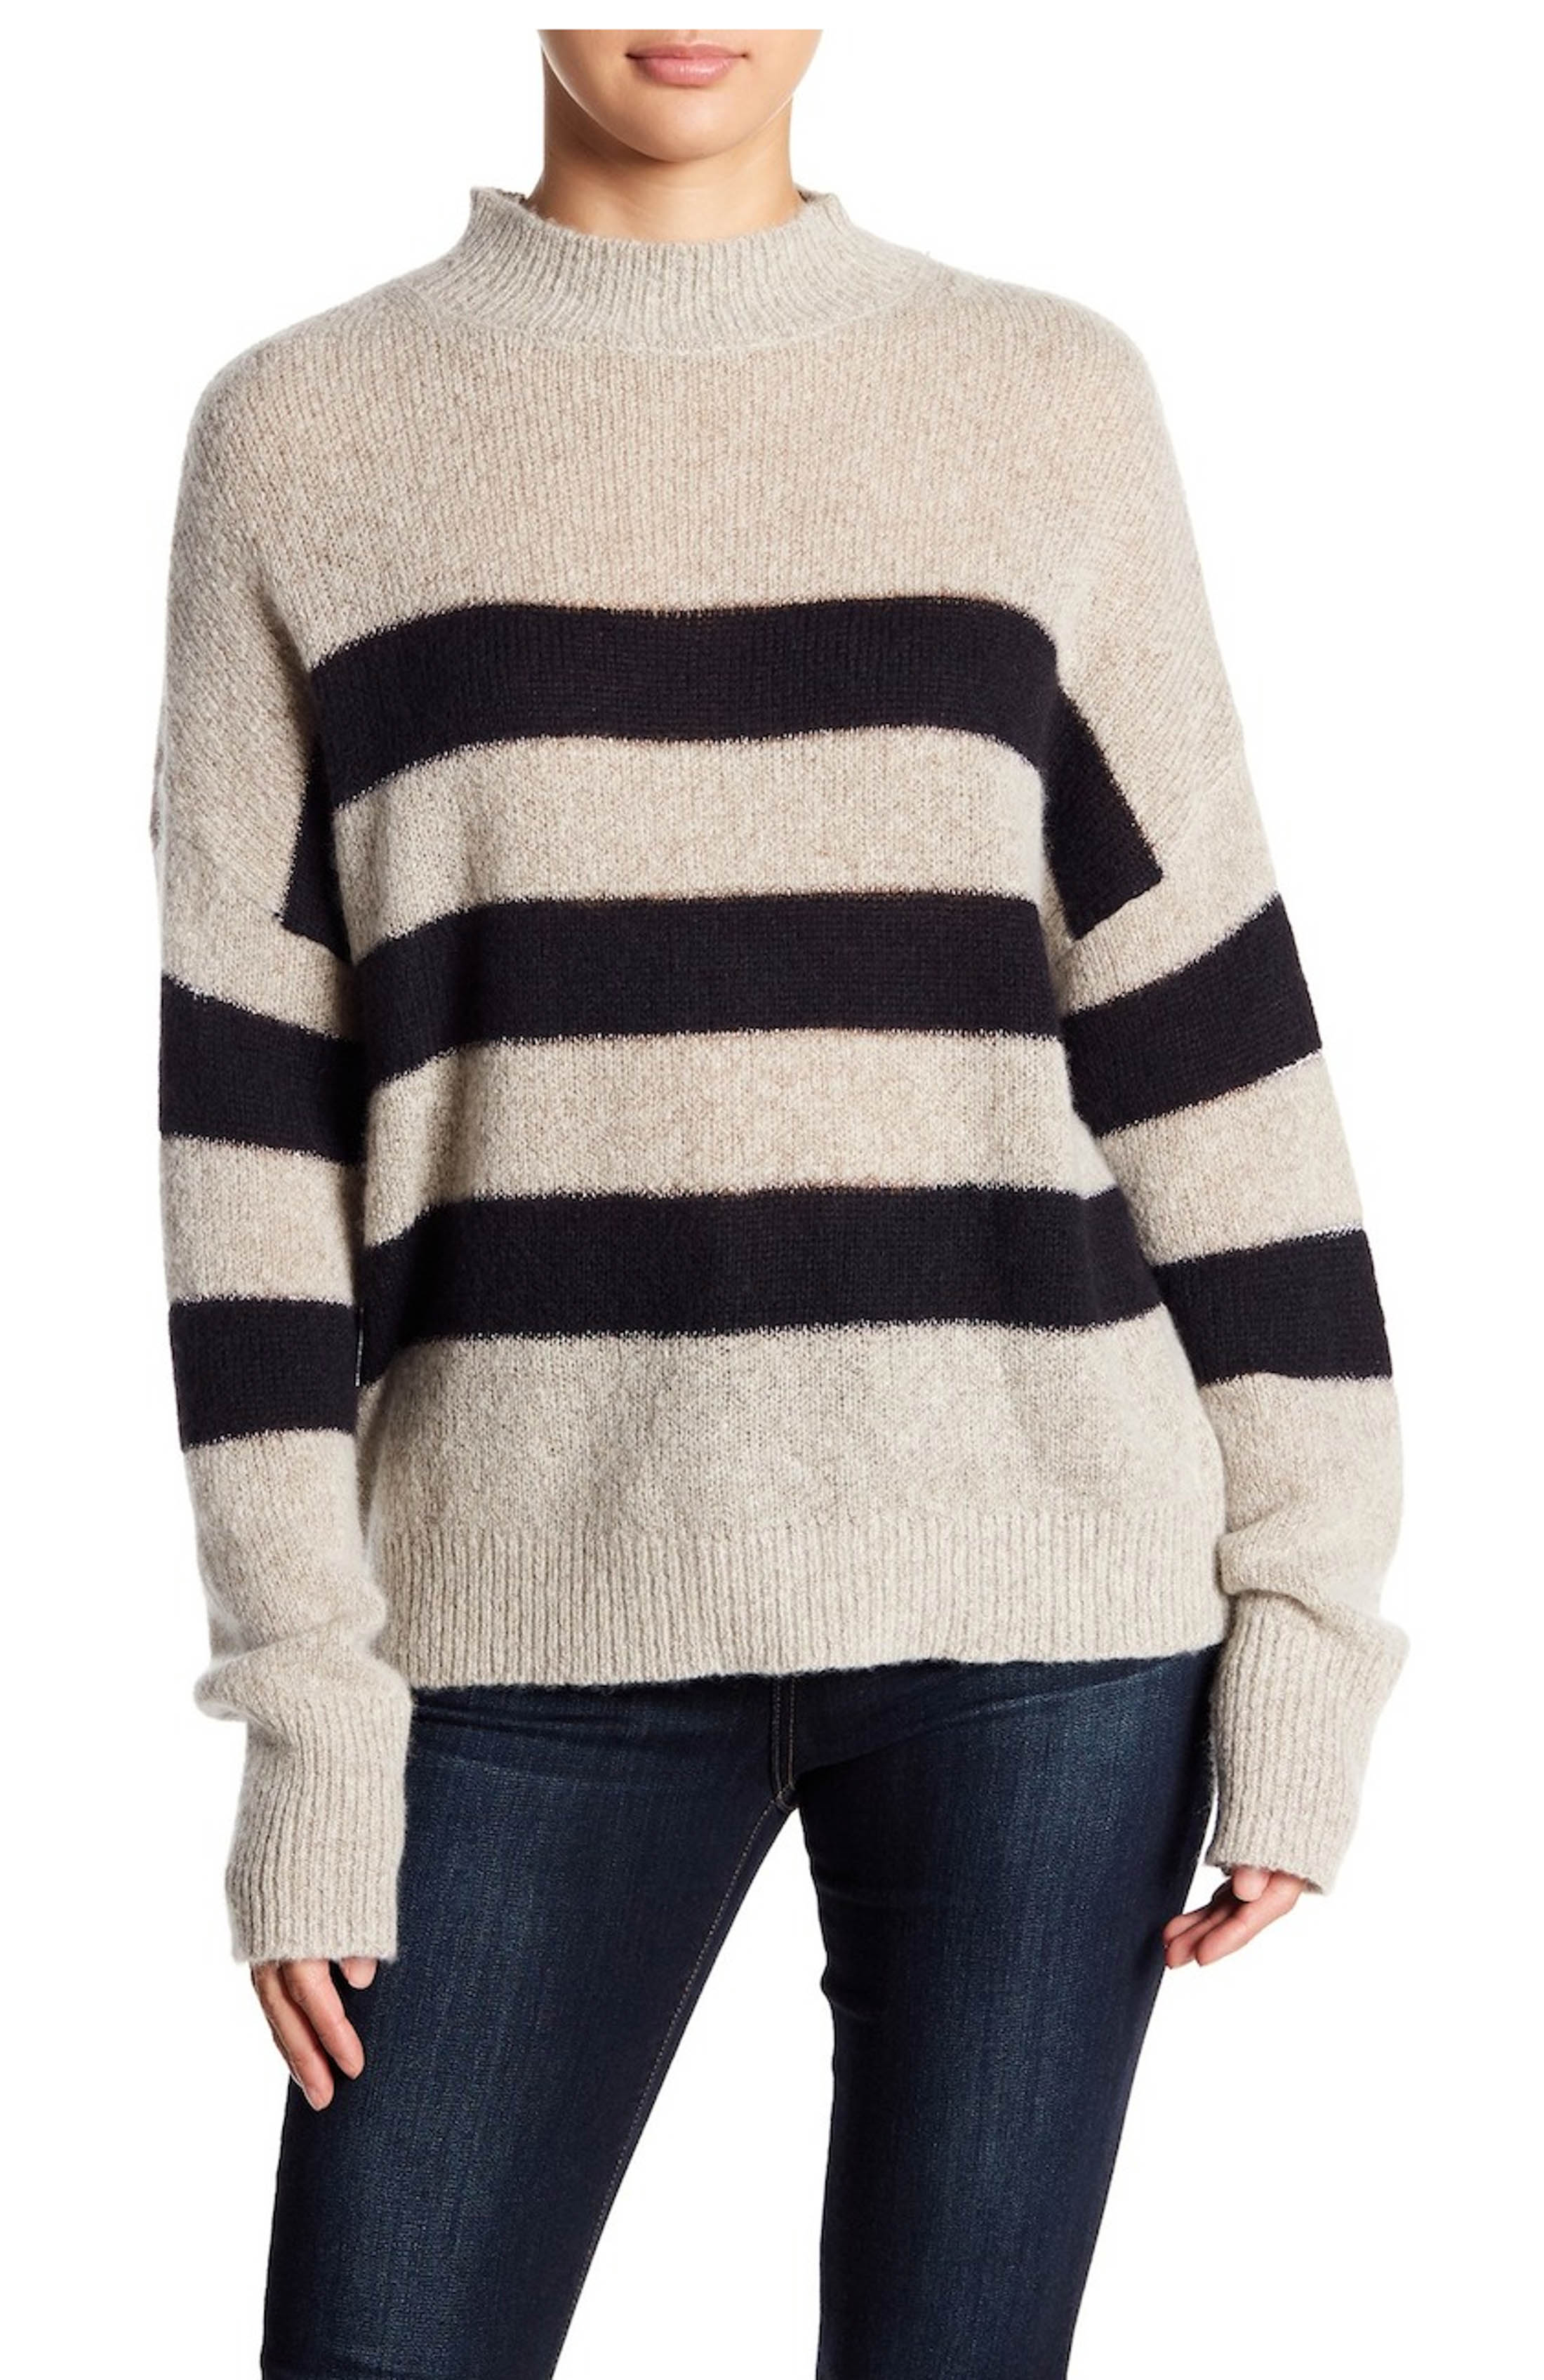 So many cute cashmere sweaters...so little time. Here are some of our hand-picked favs (just in time for winter) and all on sale.